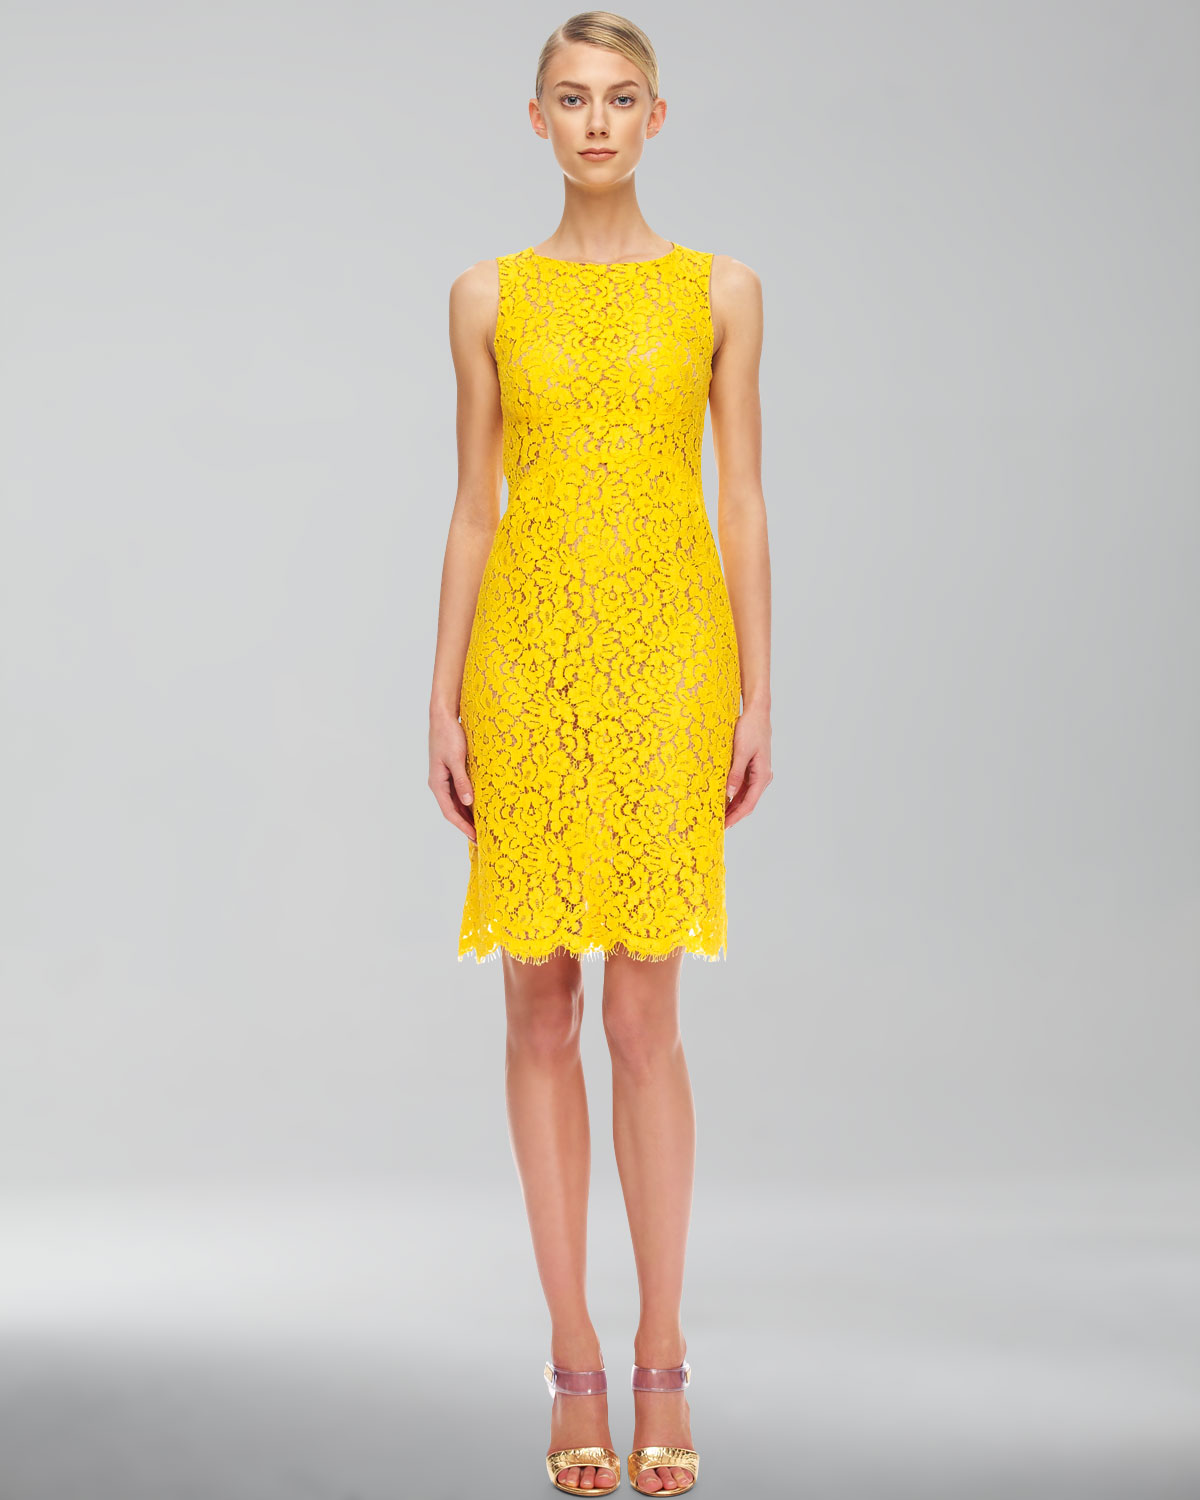 2074efadf6d7 Lyst - Michael Kors Floral Lace Empire Shift Dress in Yellow